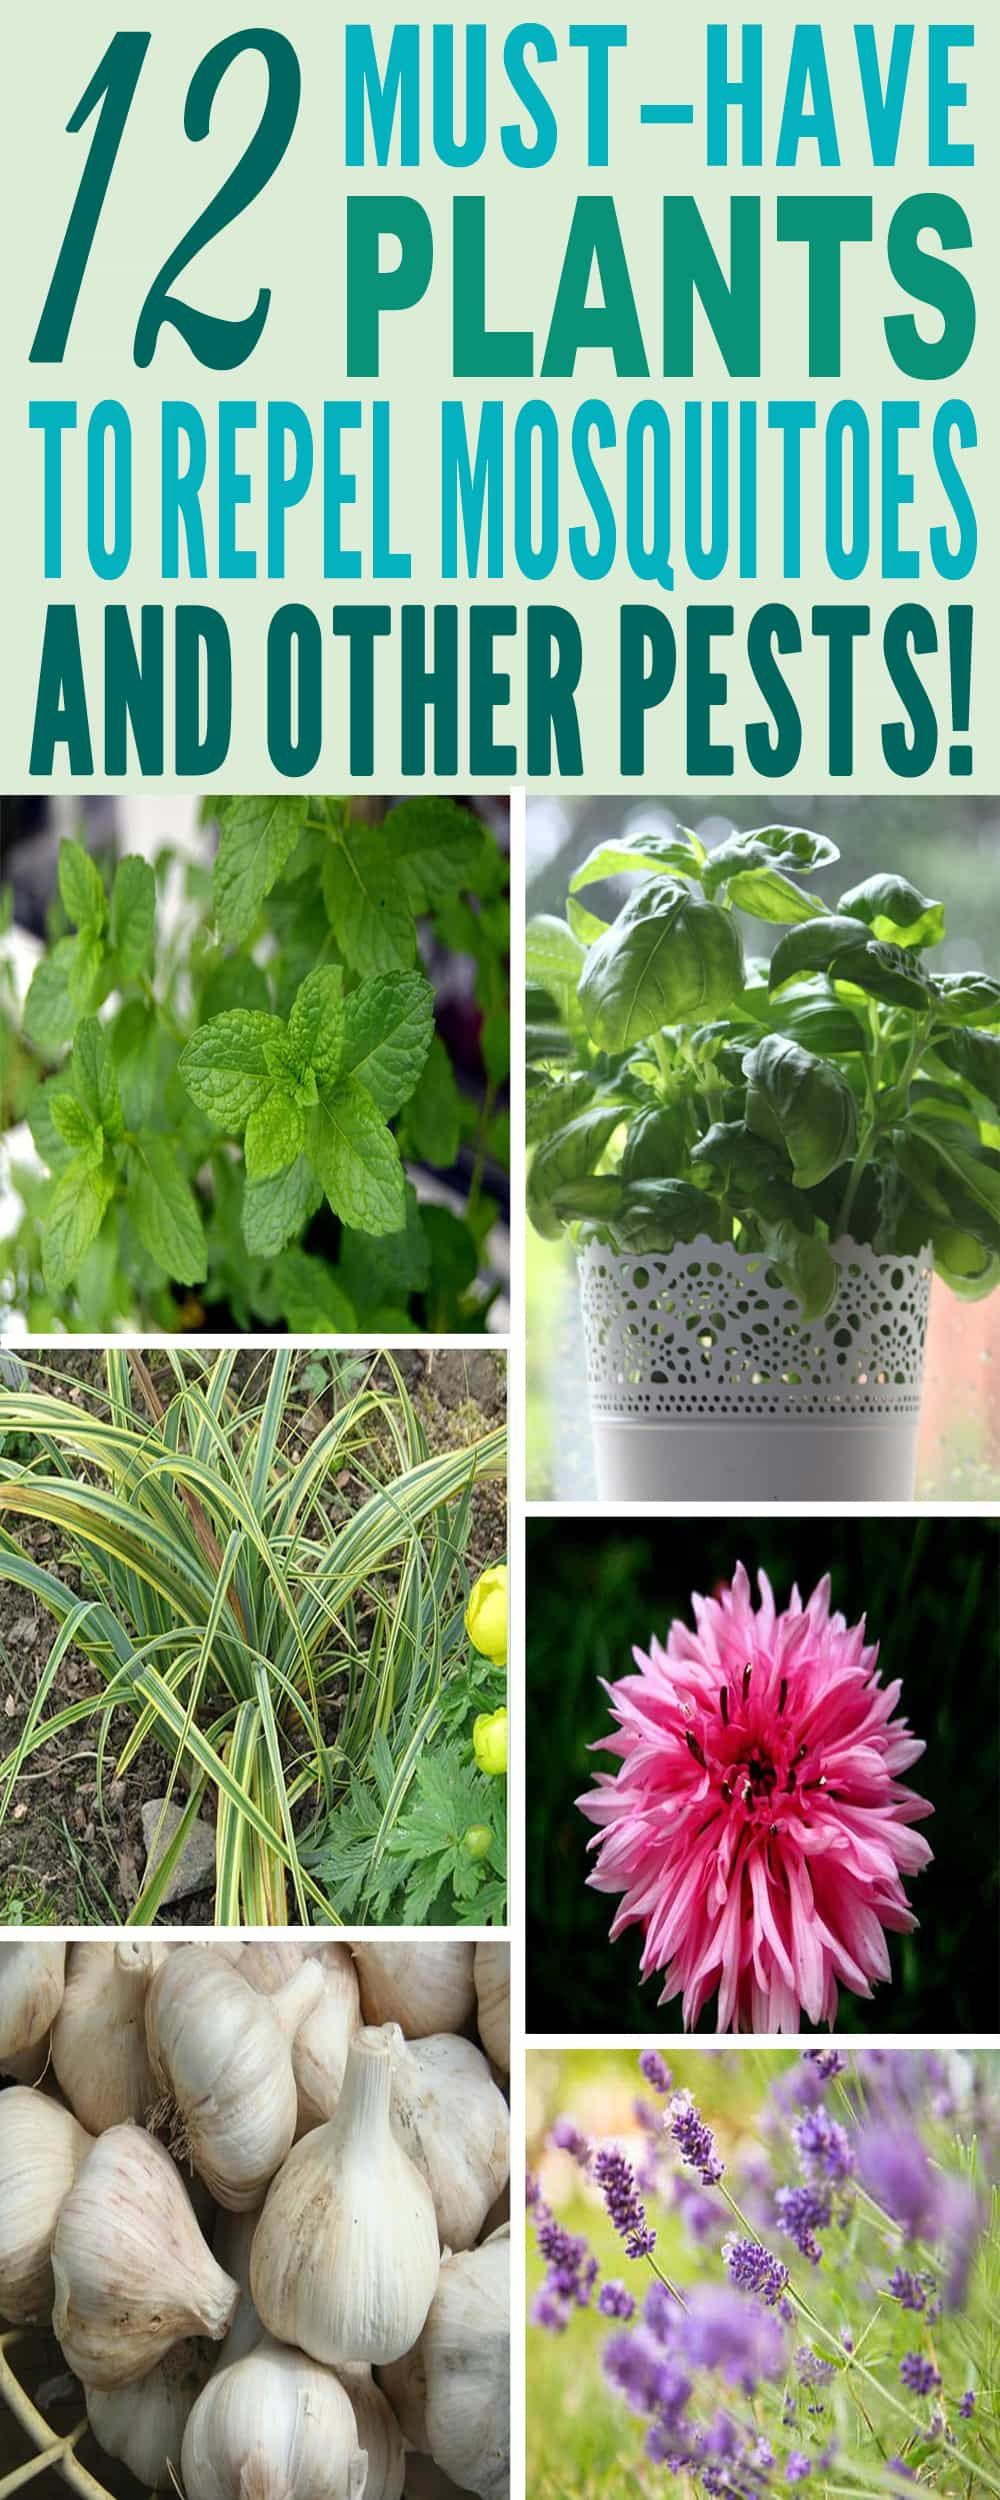 12 Amazing Plants For Your Home That Repel Mosquitoes And Other